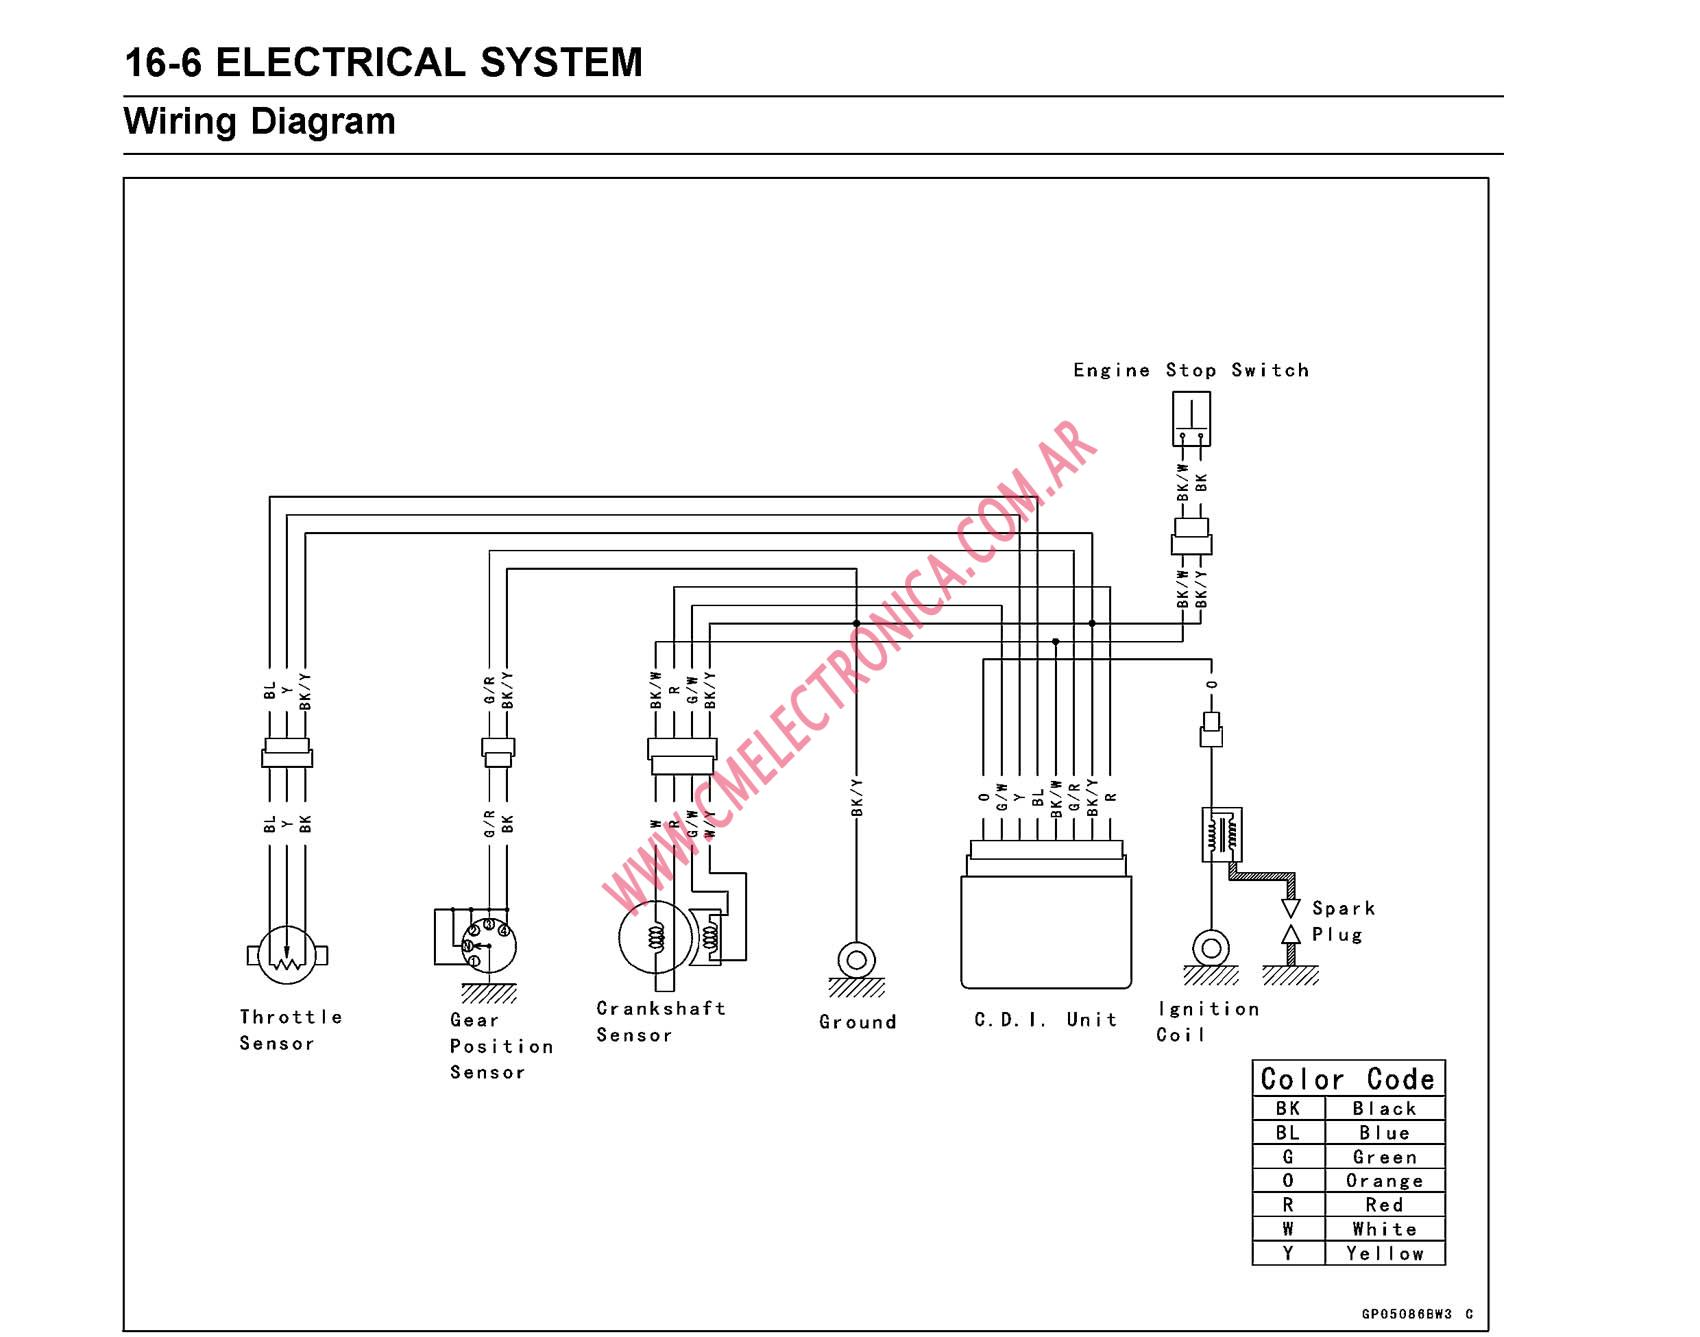 2001 Kawasaki Atv Wiring Diagram Prairie 400 4 Wheeler Bayou 220 On Chinese Transmission